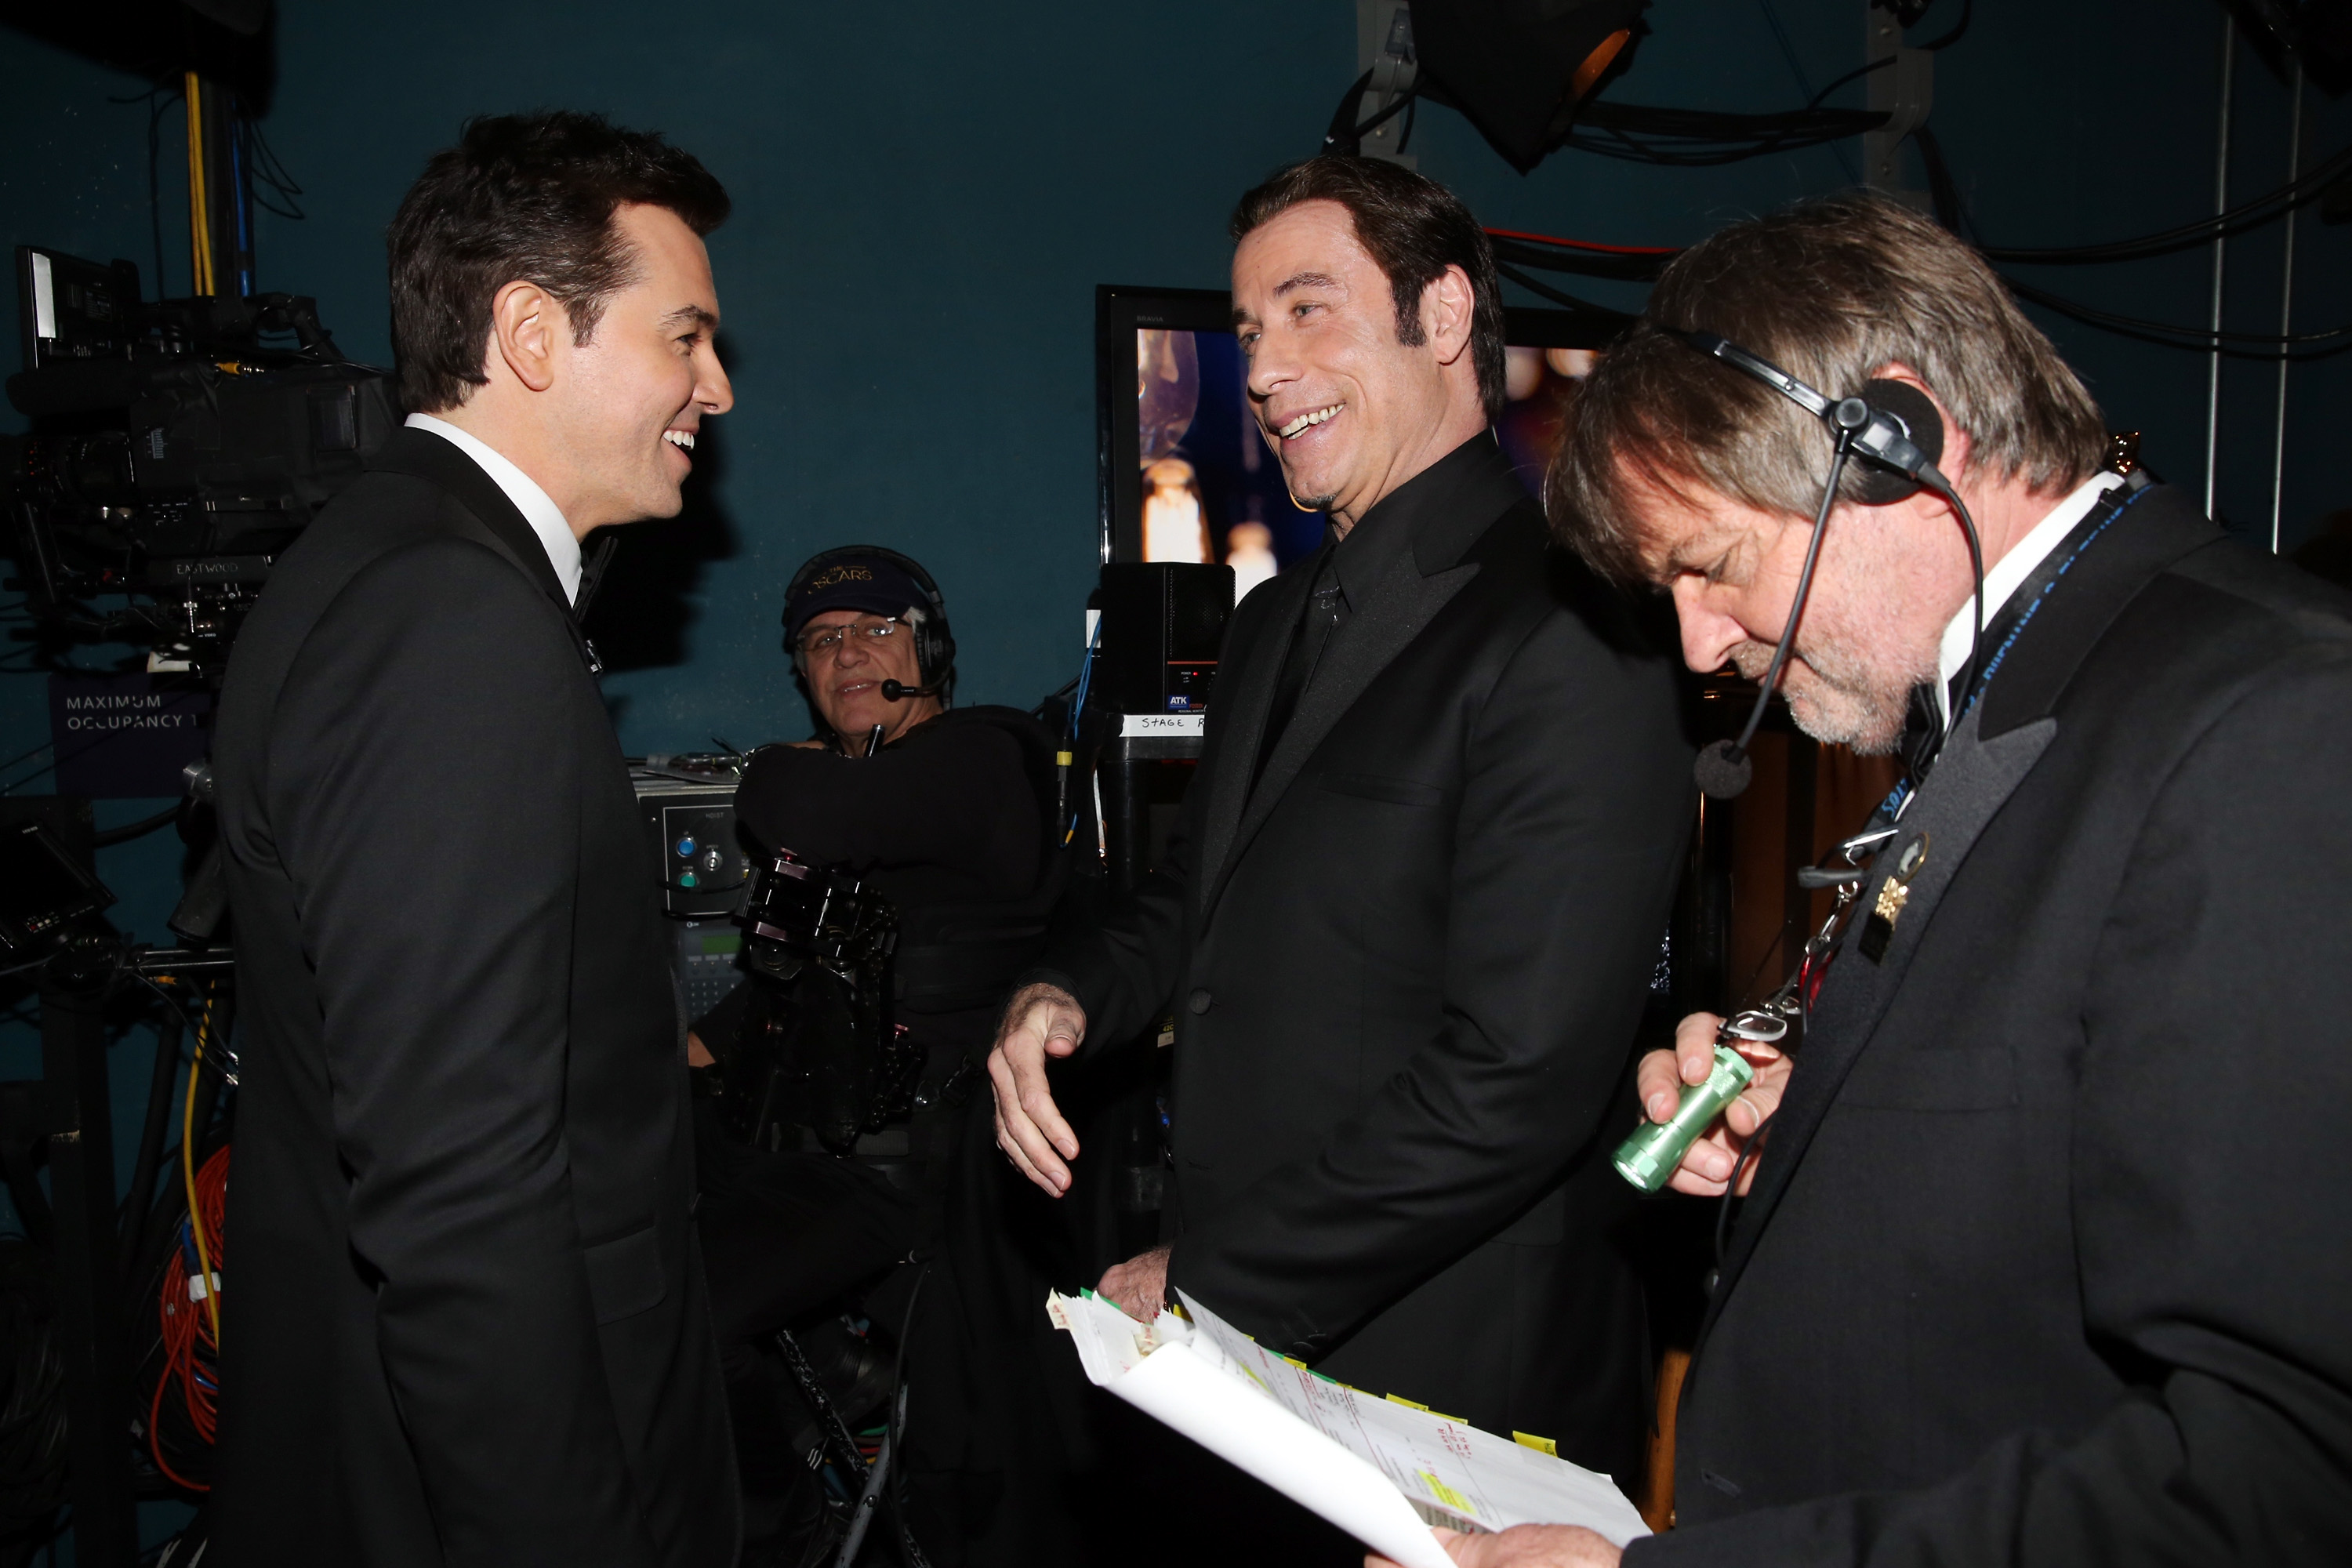 Seth MacFarlane and John Travolta backstage at the 2013 Oscars.